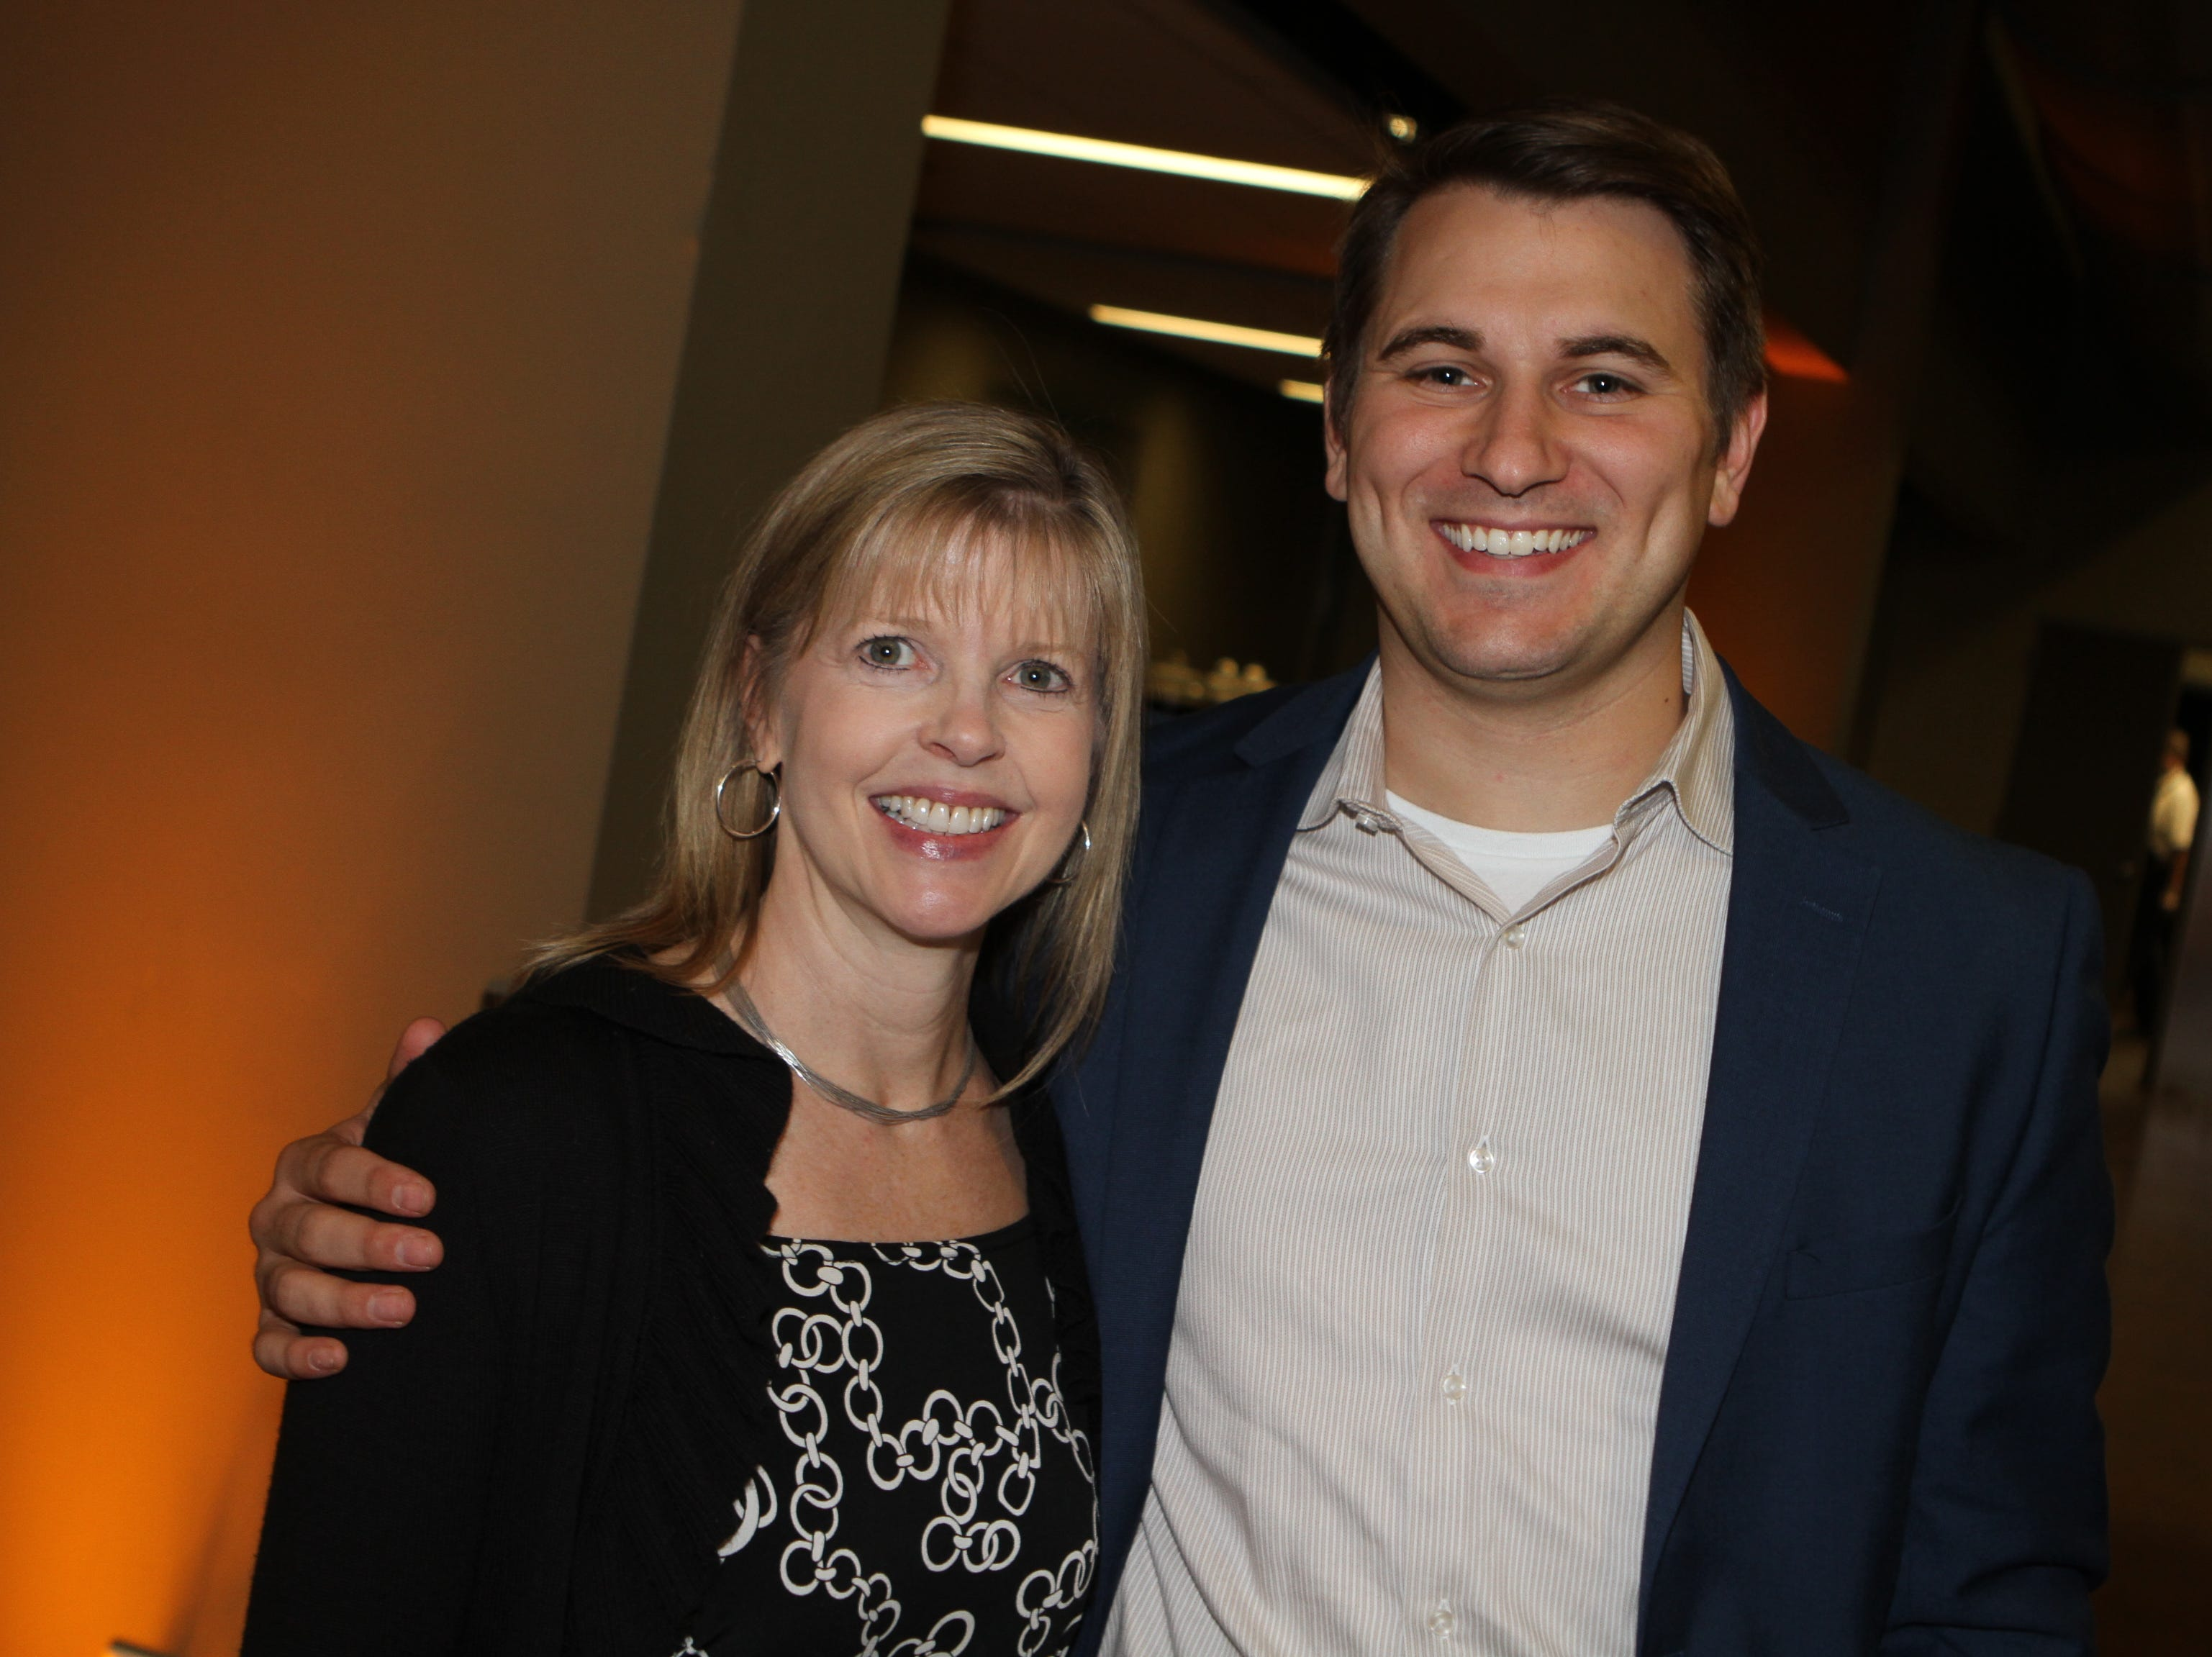 Camille Thomas and Matt Rosenfelder at CMC Education Foundation's annual fundraiser Vision to Reality on Friday, November 2, 2018